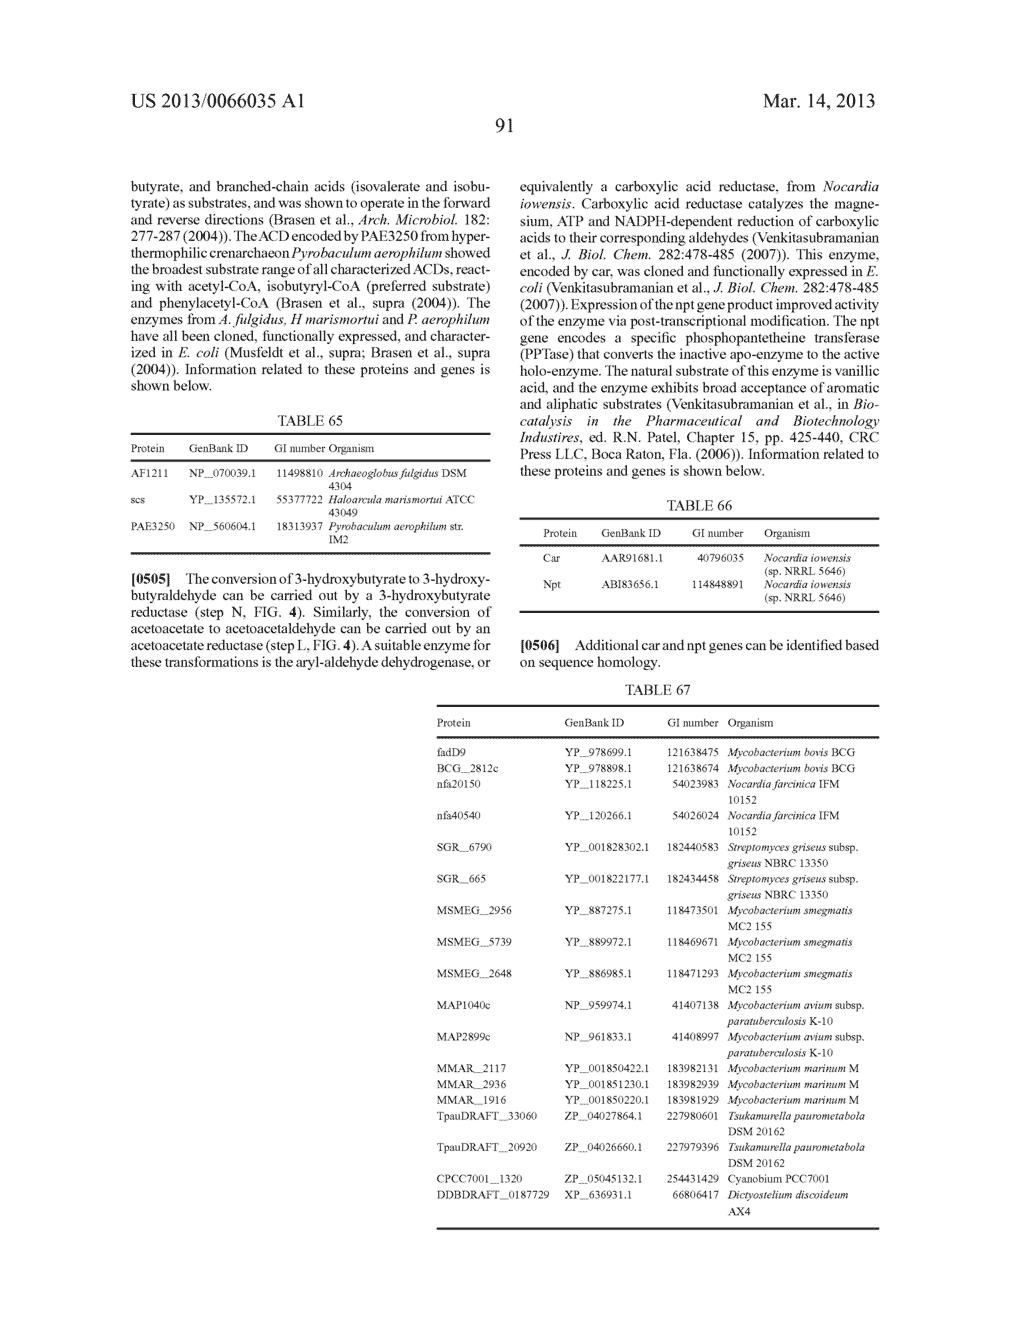 EUKARYOTIC ORGANISMS AND METHODS FOR INCREASING THE AVAILABILITY OF     CYTOSOLIC ACETYL-COA, AND FOR PRODUCING 1,3-BUTANEDIOL - diagram, schematic, and image 102